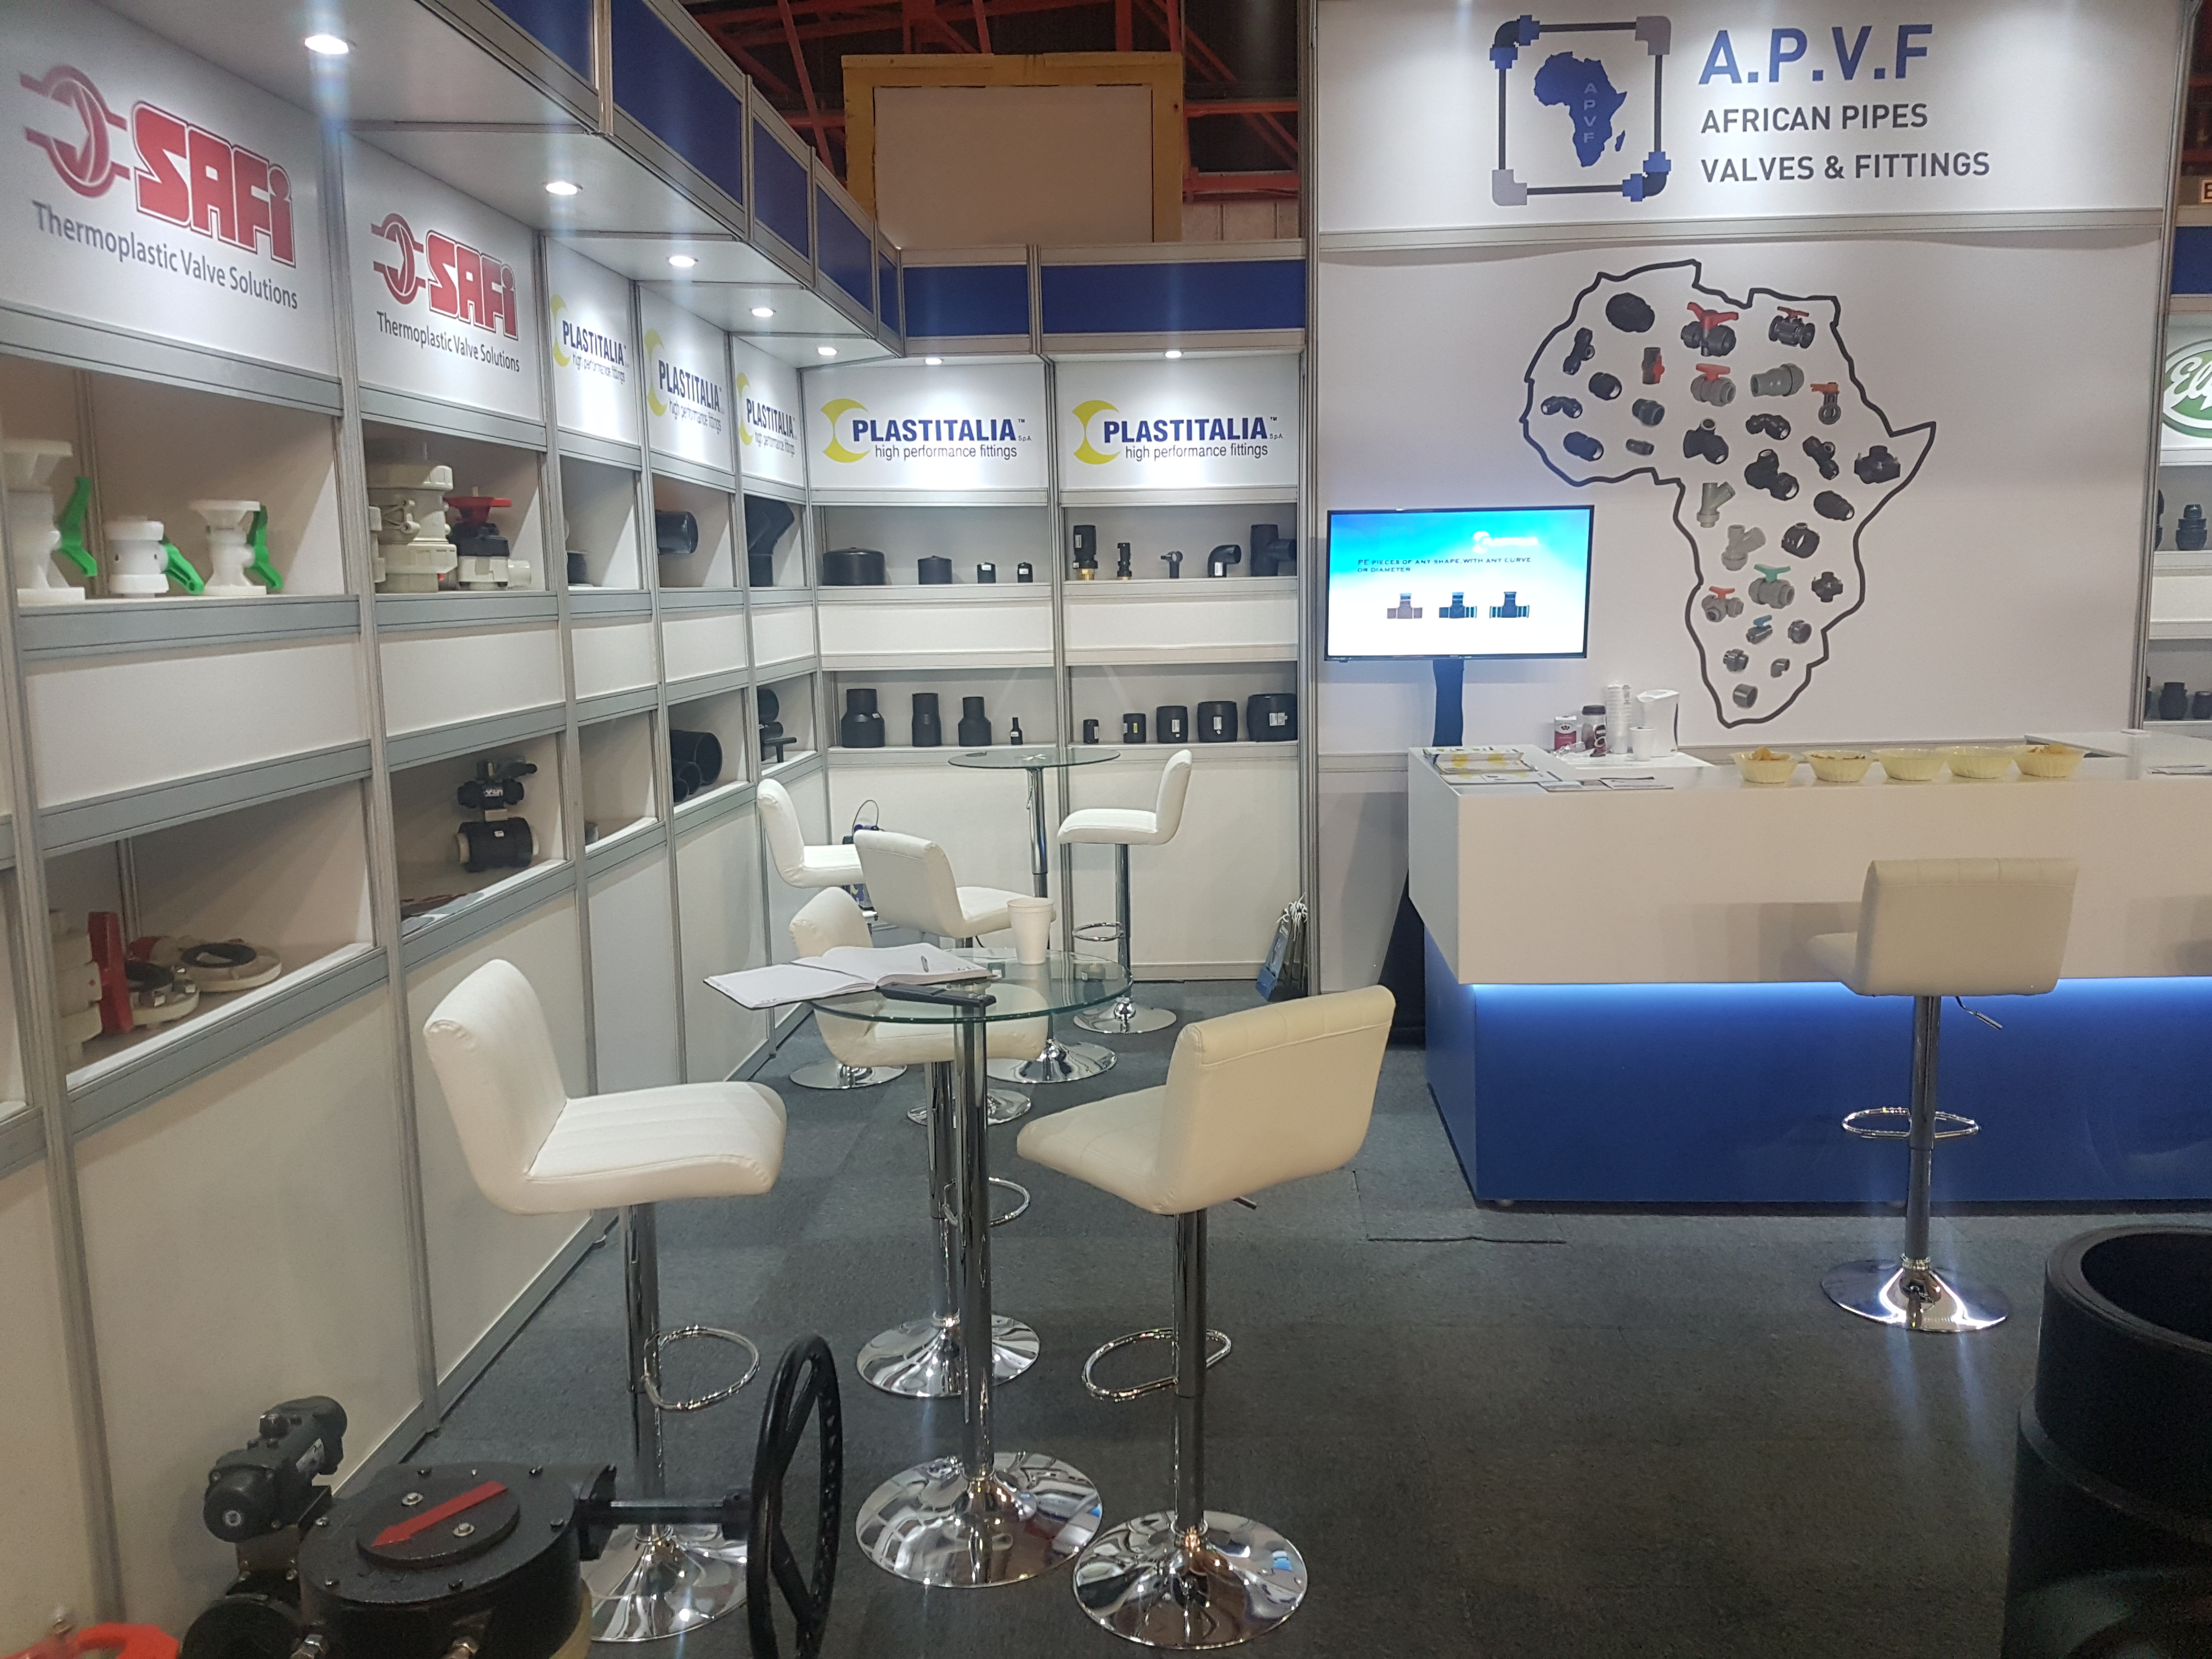 APVF | African Pipes Valves & Fittings Pty  Ltd